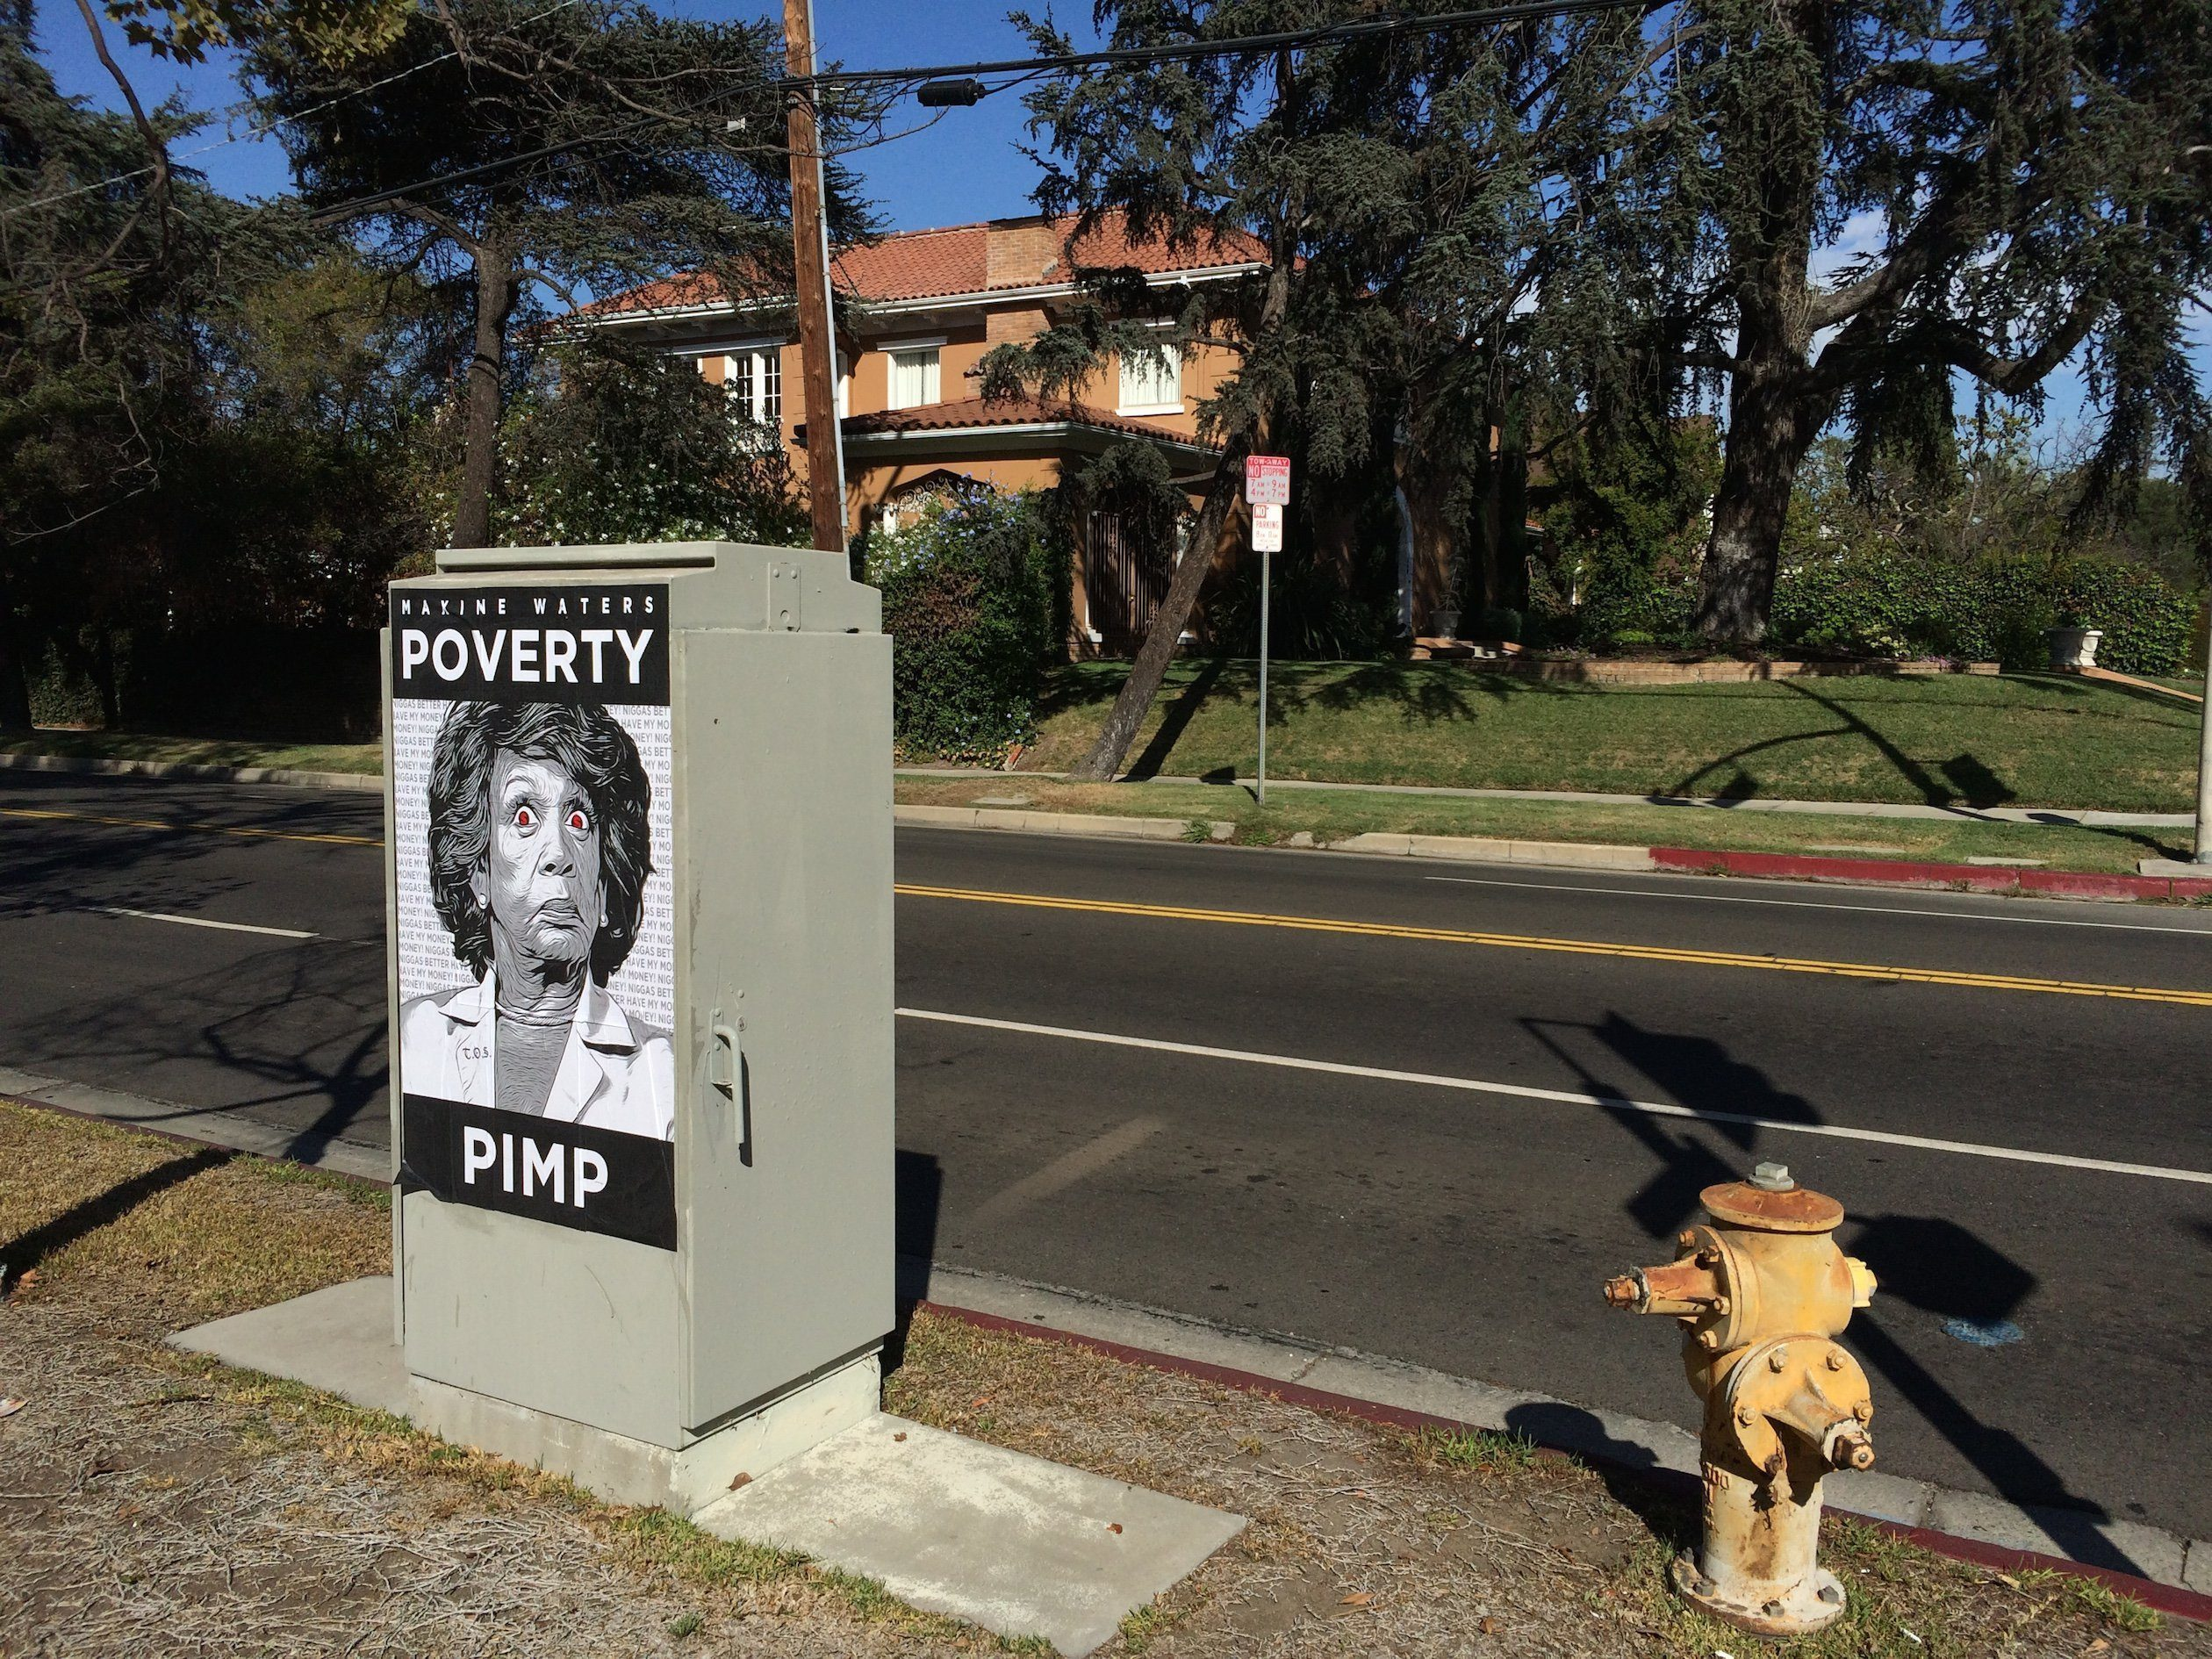 zzzzzzzzzzzzzzzzzzzzzzzzzzzzzzzzzzzzzzzzzzzzzzzzzzzzzzzzzzzzzzzzzMaxine-Waters-Poverty-PimpPoster-in-front-of-her-Hancock-Park-Mansion-2